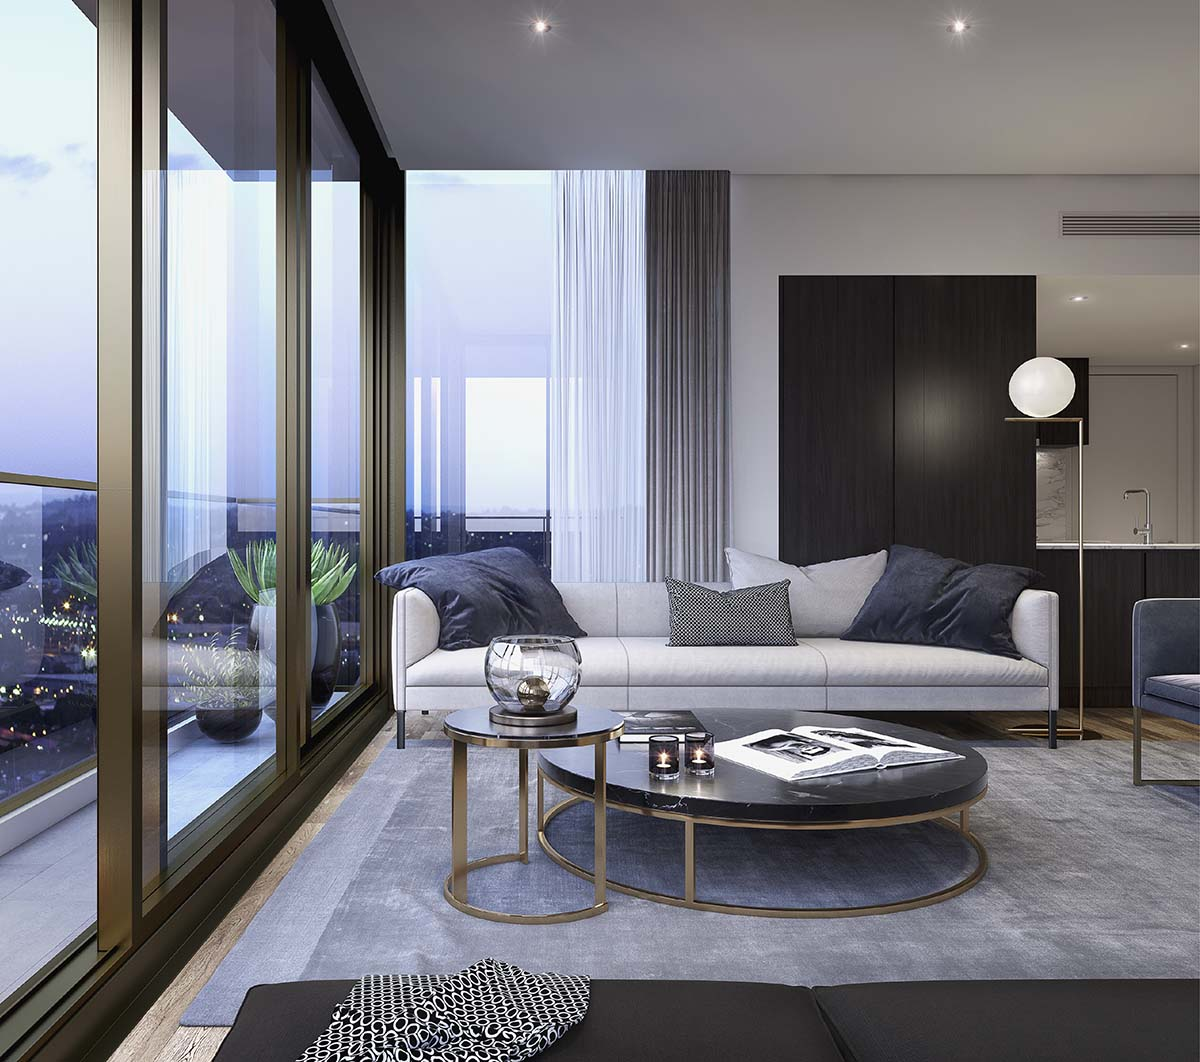 living room with sofa, coffee table and glass wall showing the city view